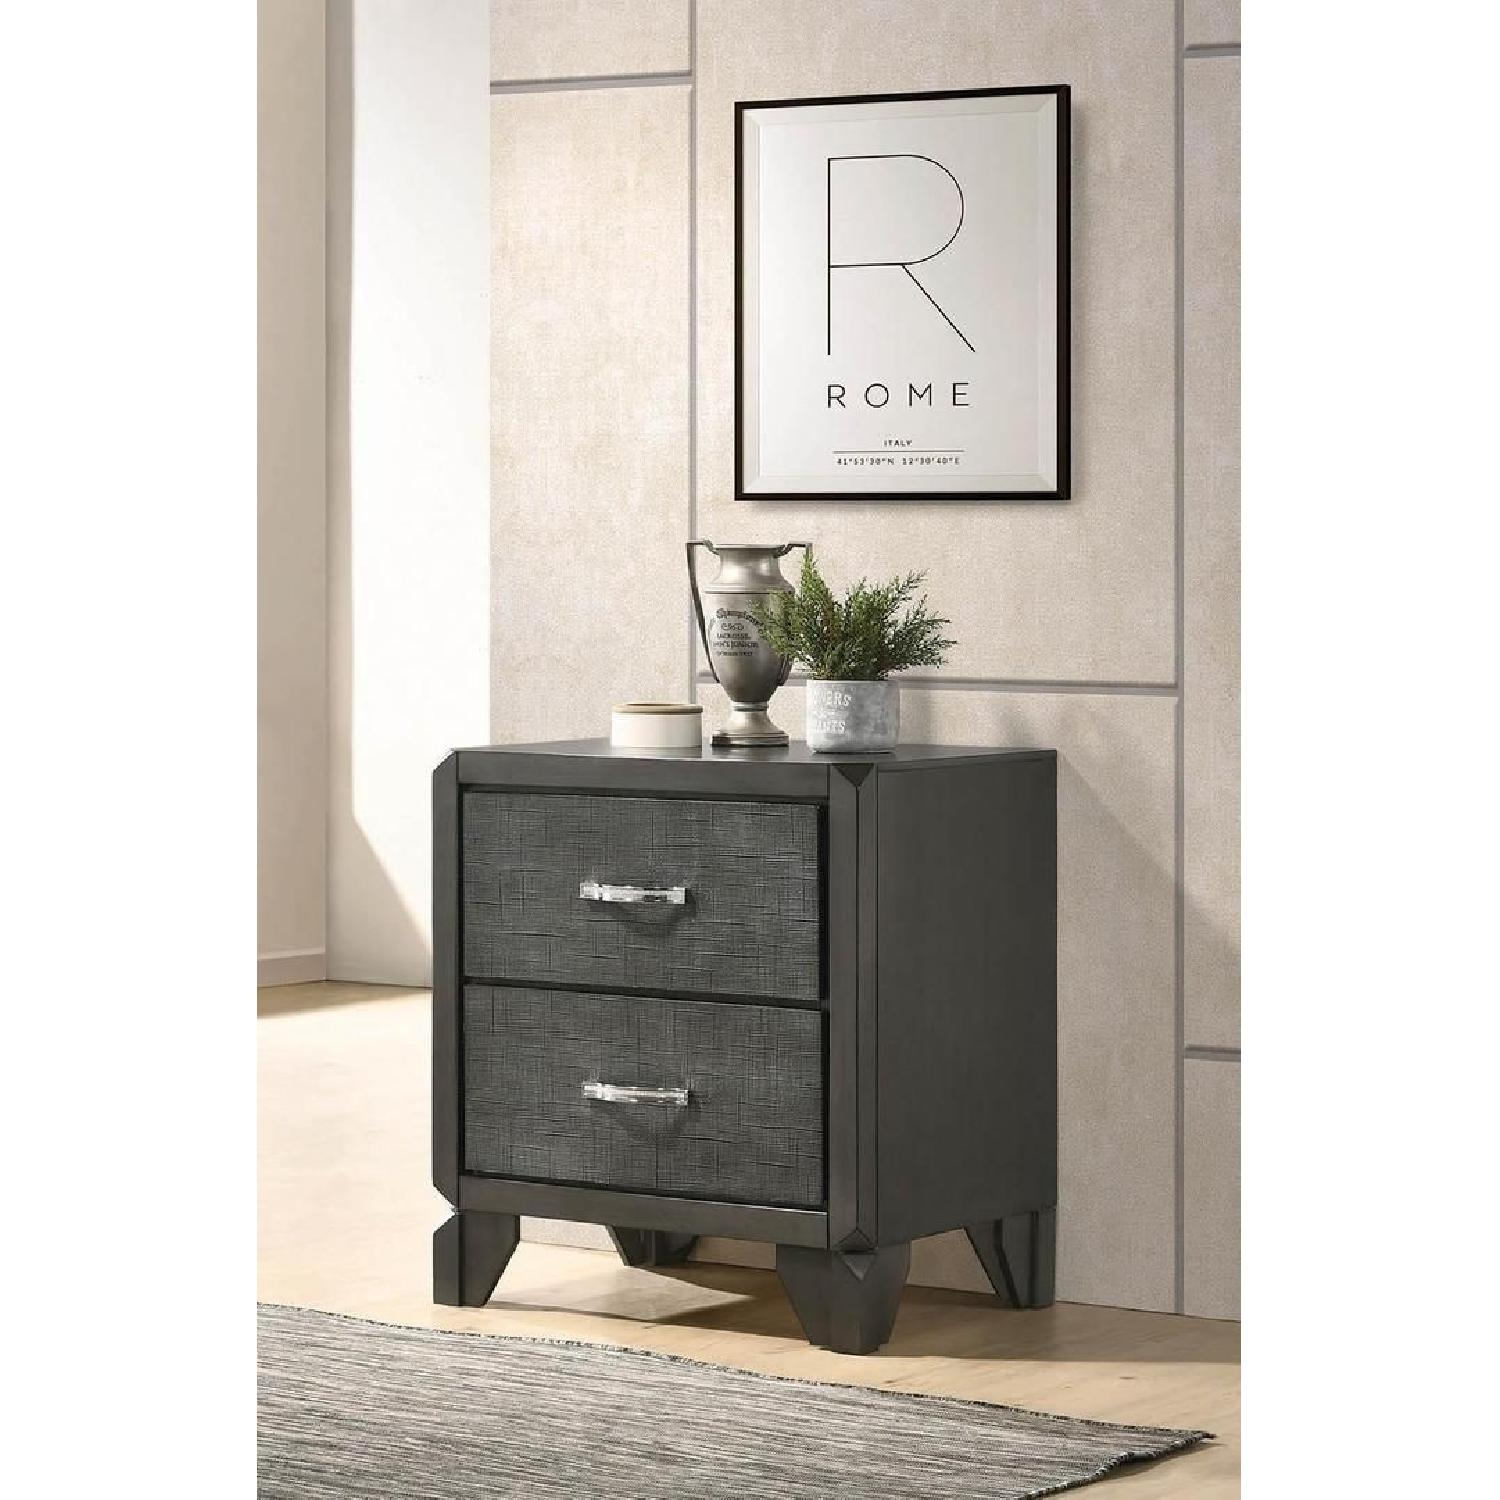 2-Drawer Nightstand in Caviar Finish w/ Woven Texture Front - image-6